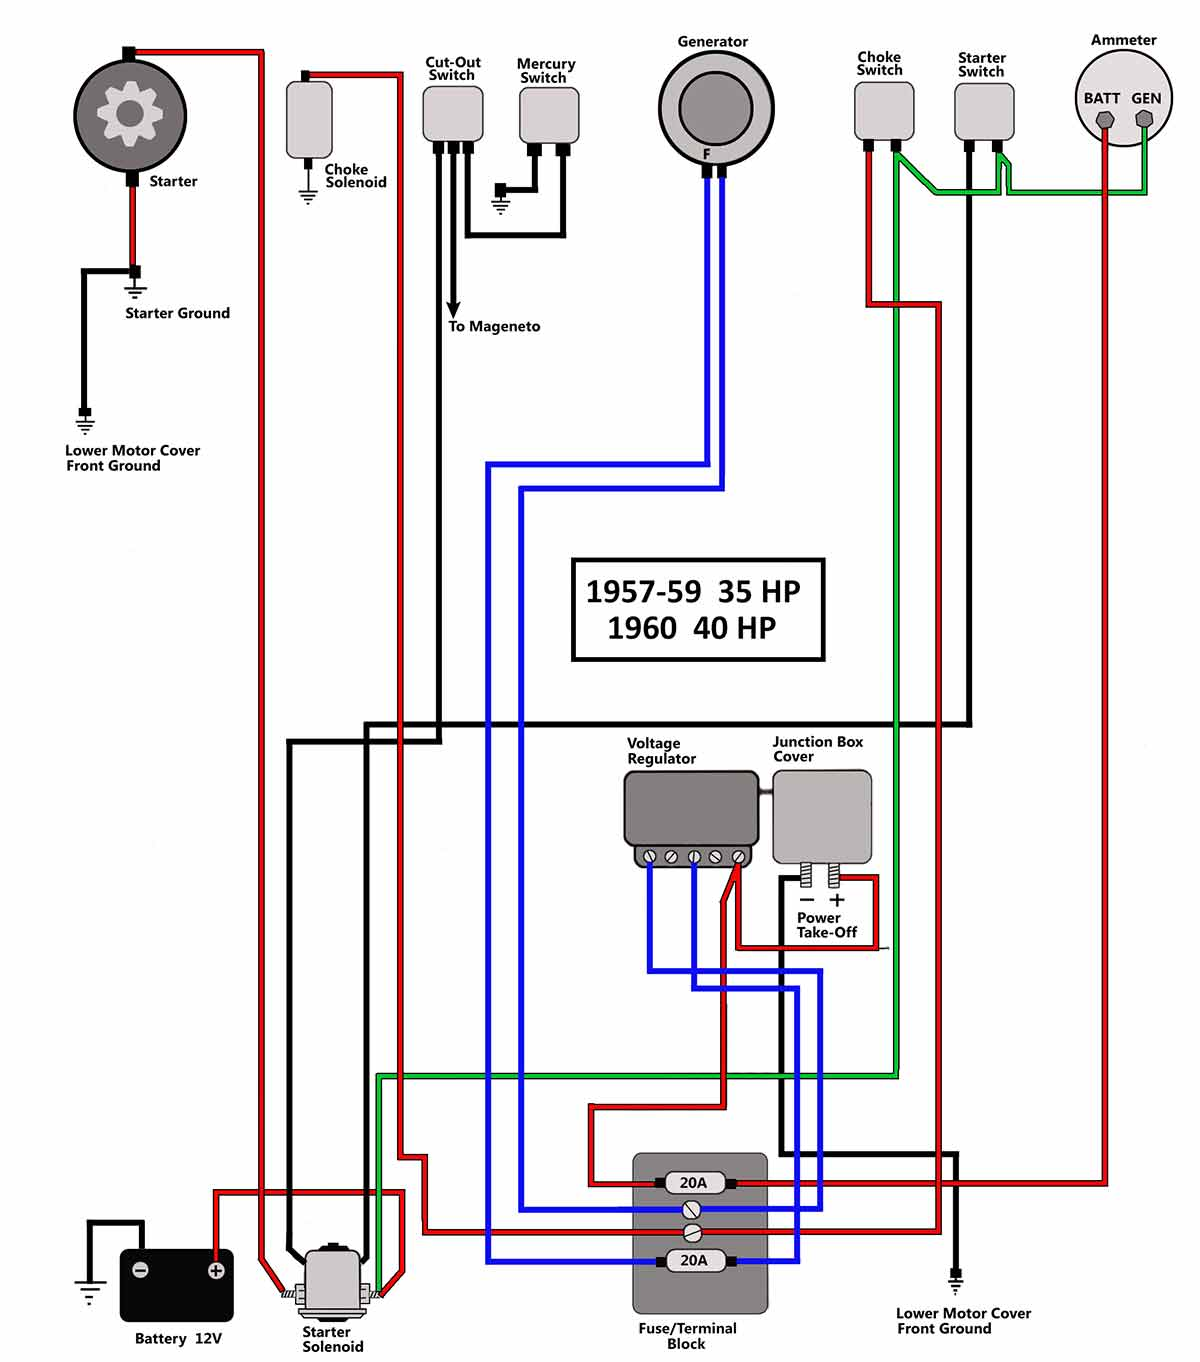 1957 60_35 40 help with wiring ignition and connecting battery to 1973 40hp chrysler outboard wiring diagram at panicattacktreatment.co